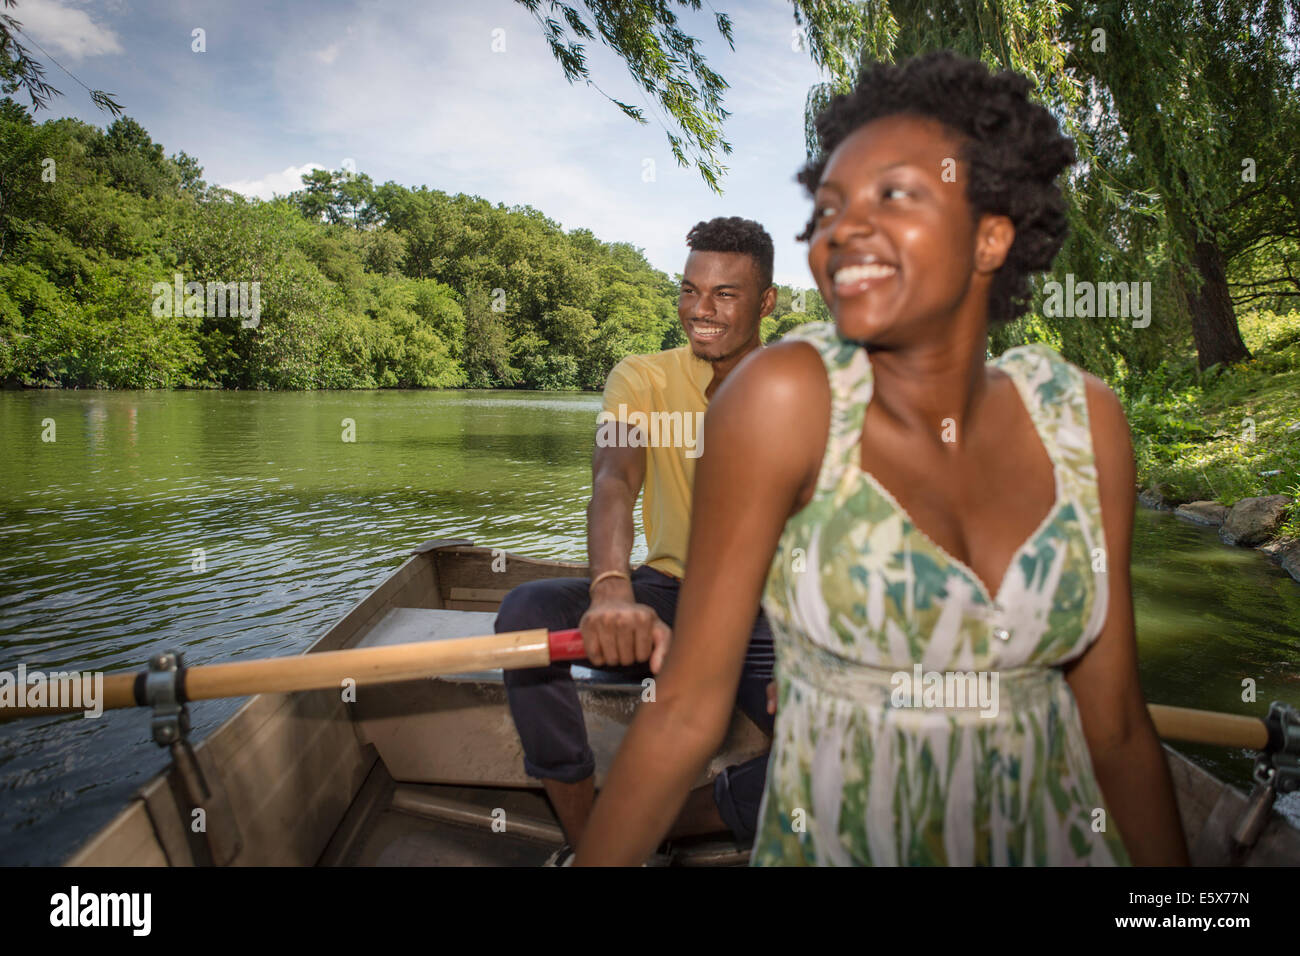 Young couple in rowing boat on lake in Central Park, New York City, USA Stock Photo